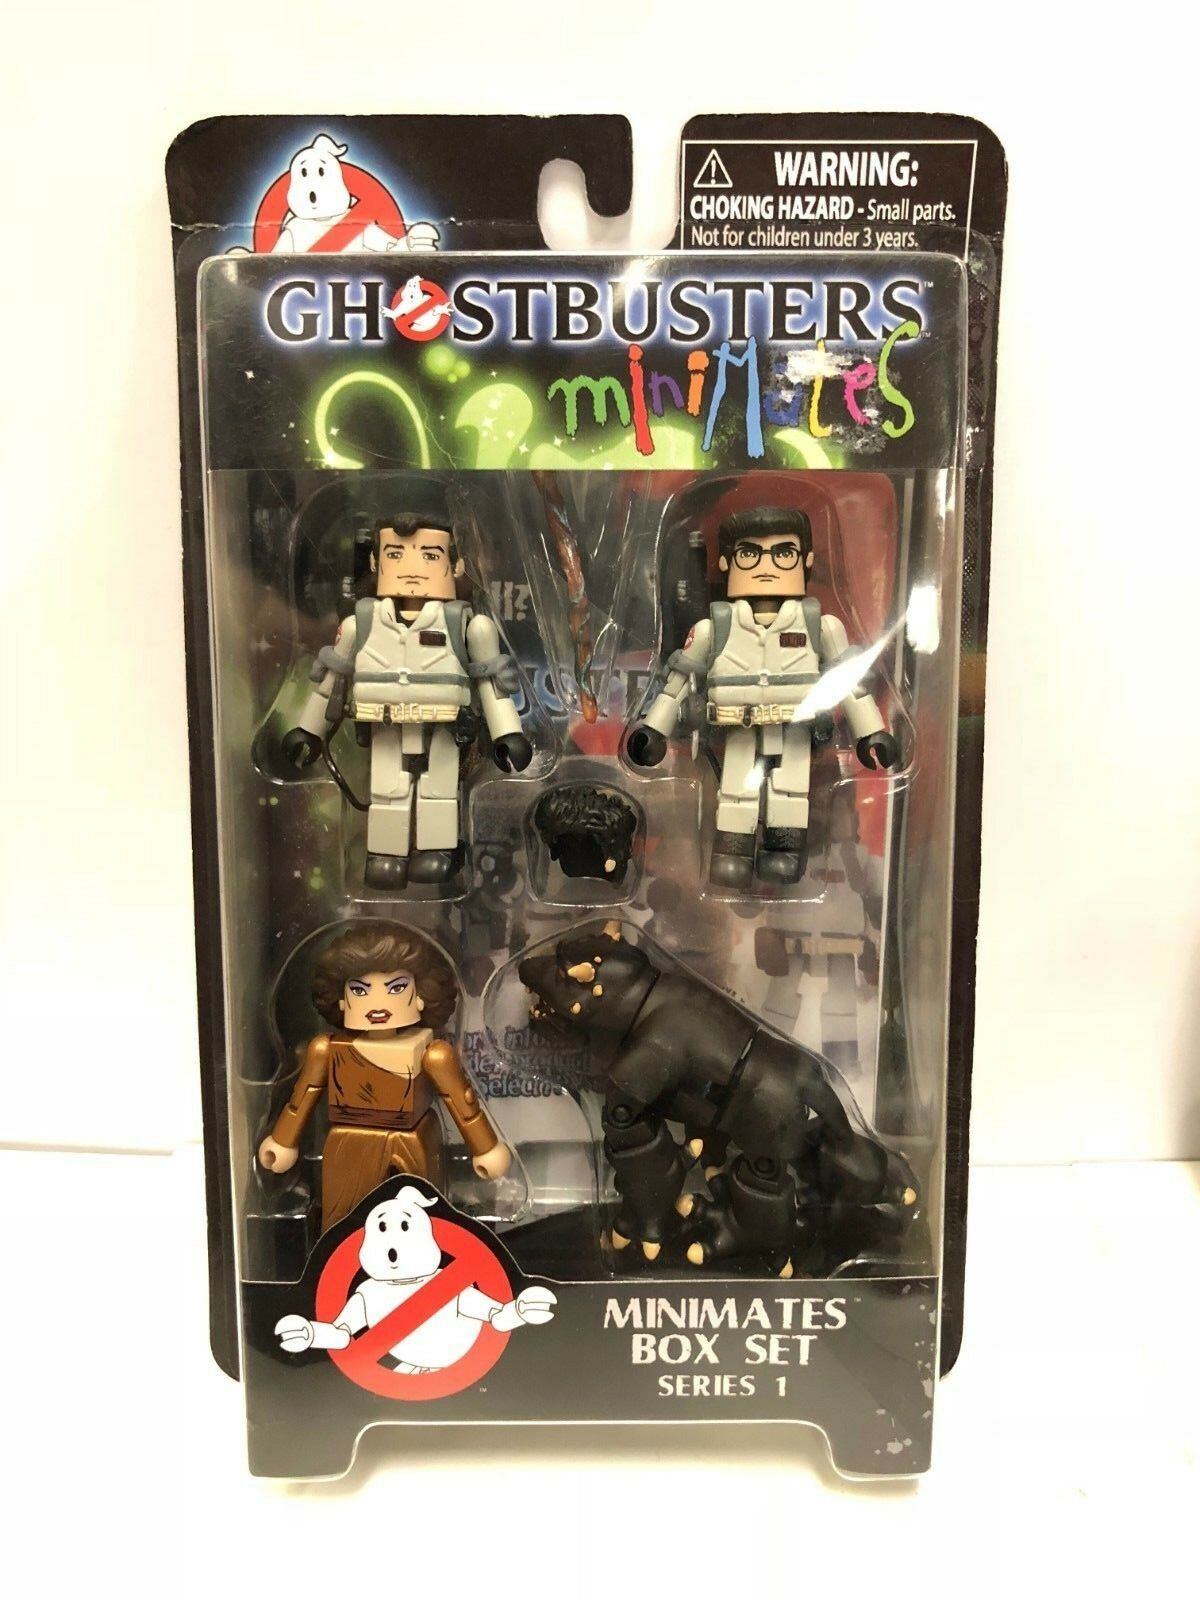 Ghostbusters Minimates Scatola Set Serie 1 Set Personaggi Diamond Select 2009